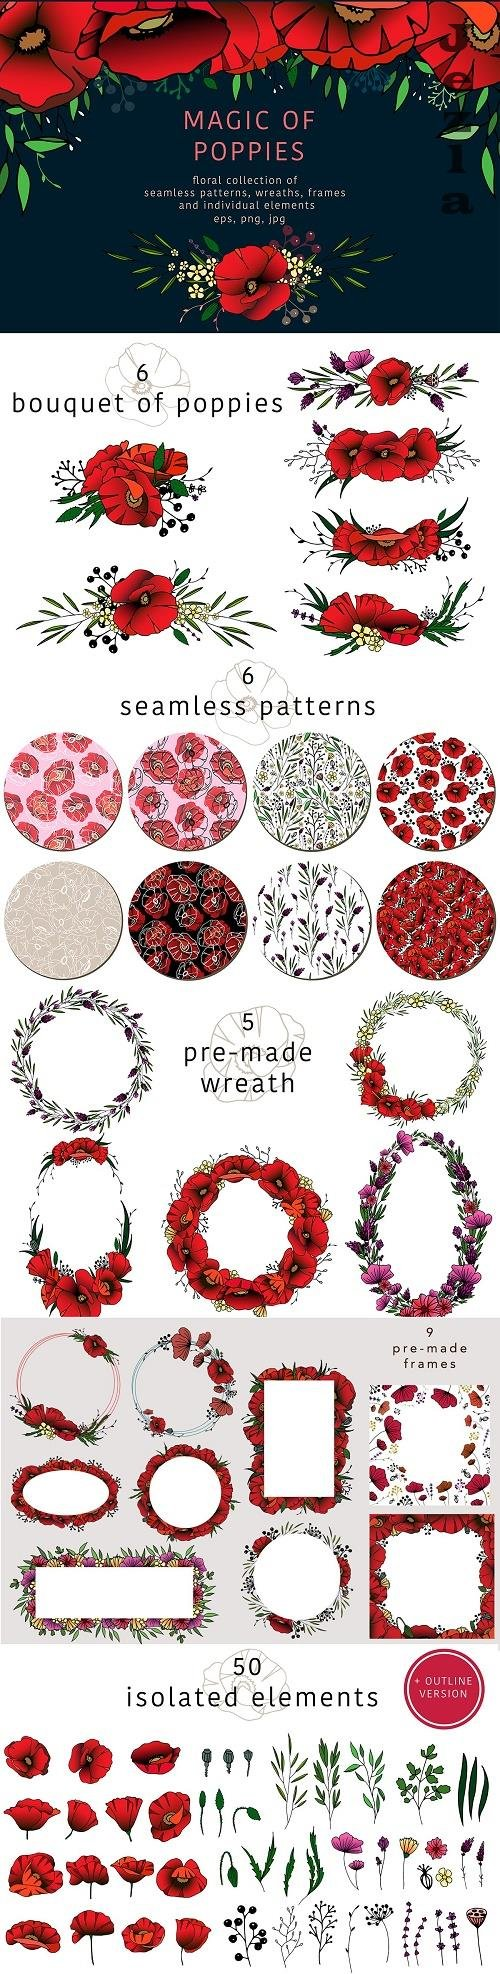 Magic of poppies - floral collection - 2135537